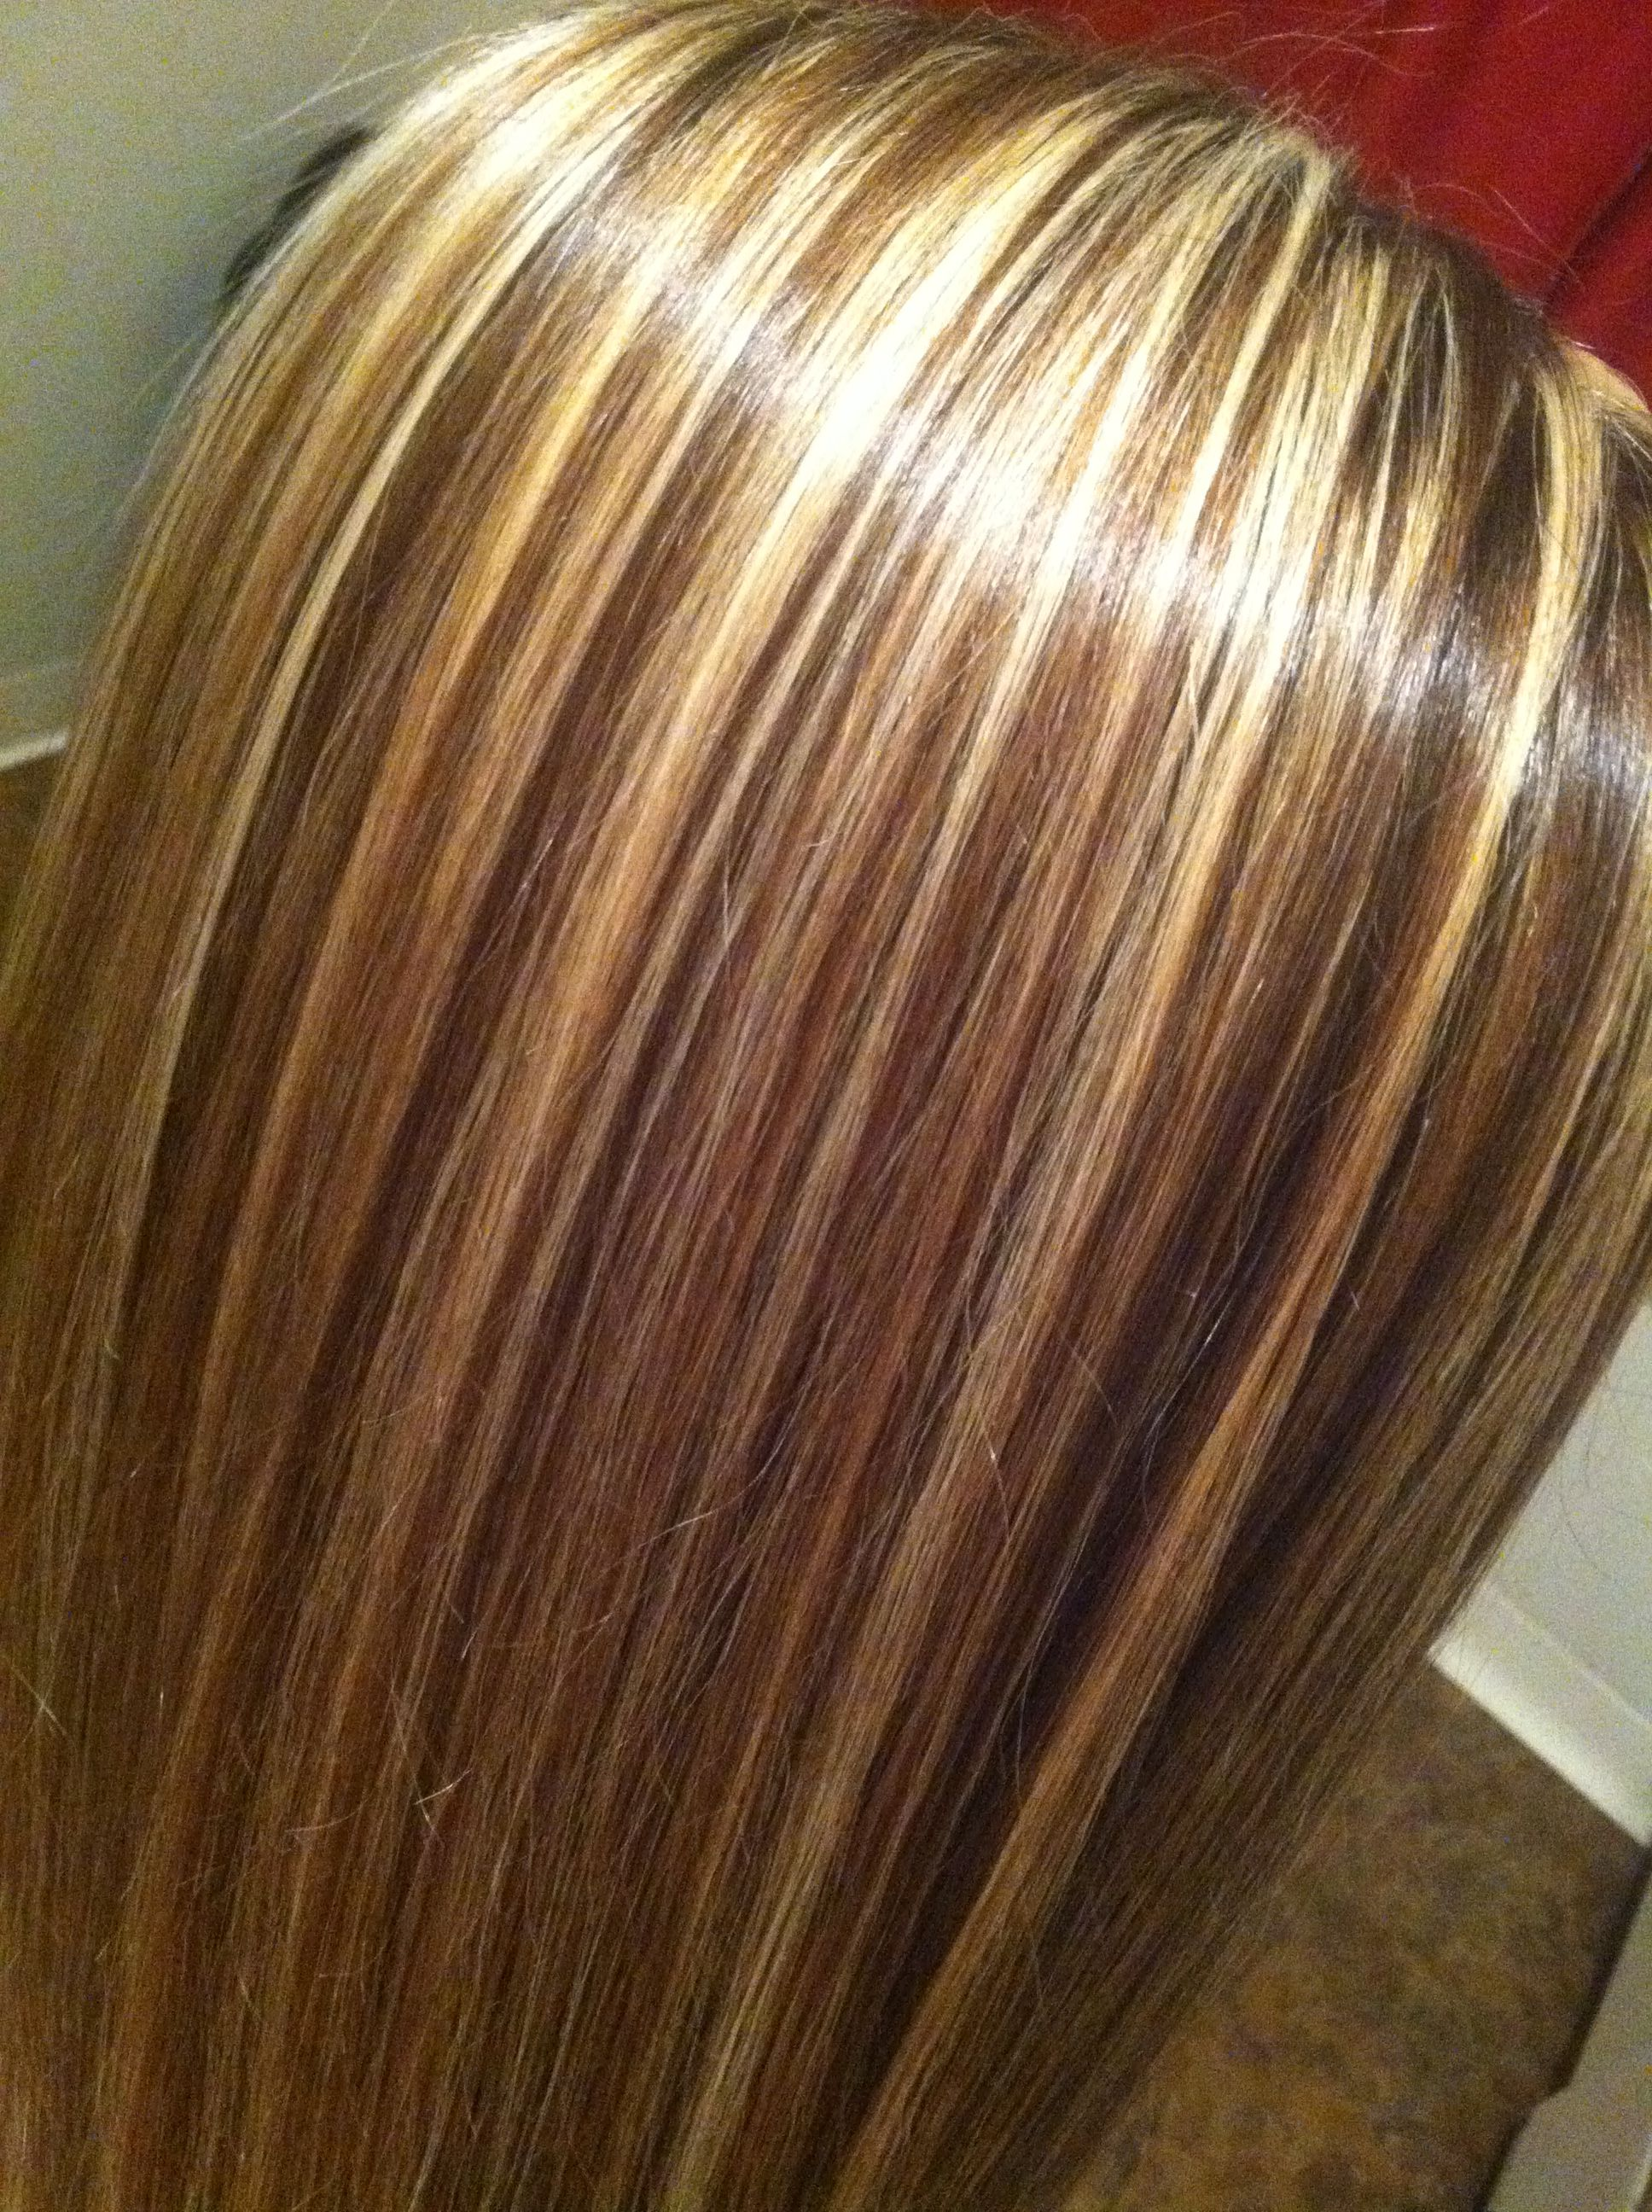 Highlight Blonde Like The Colors But Should Be Blended More For Me